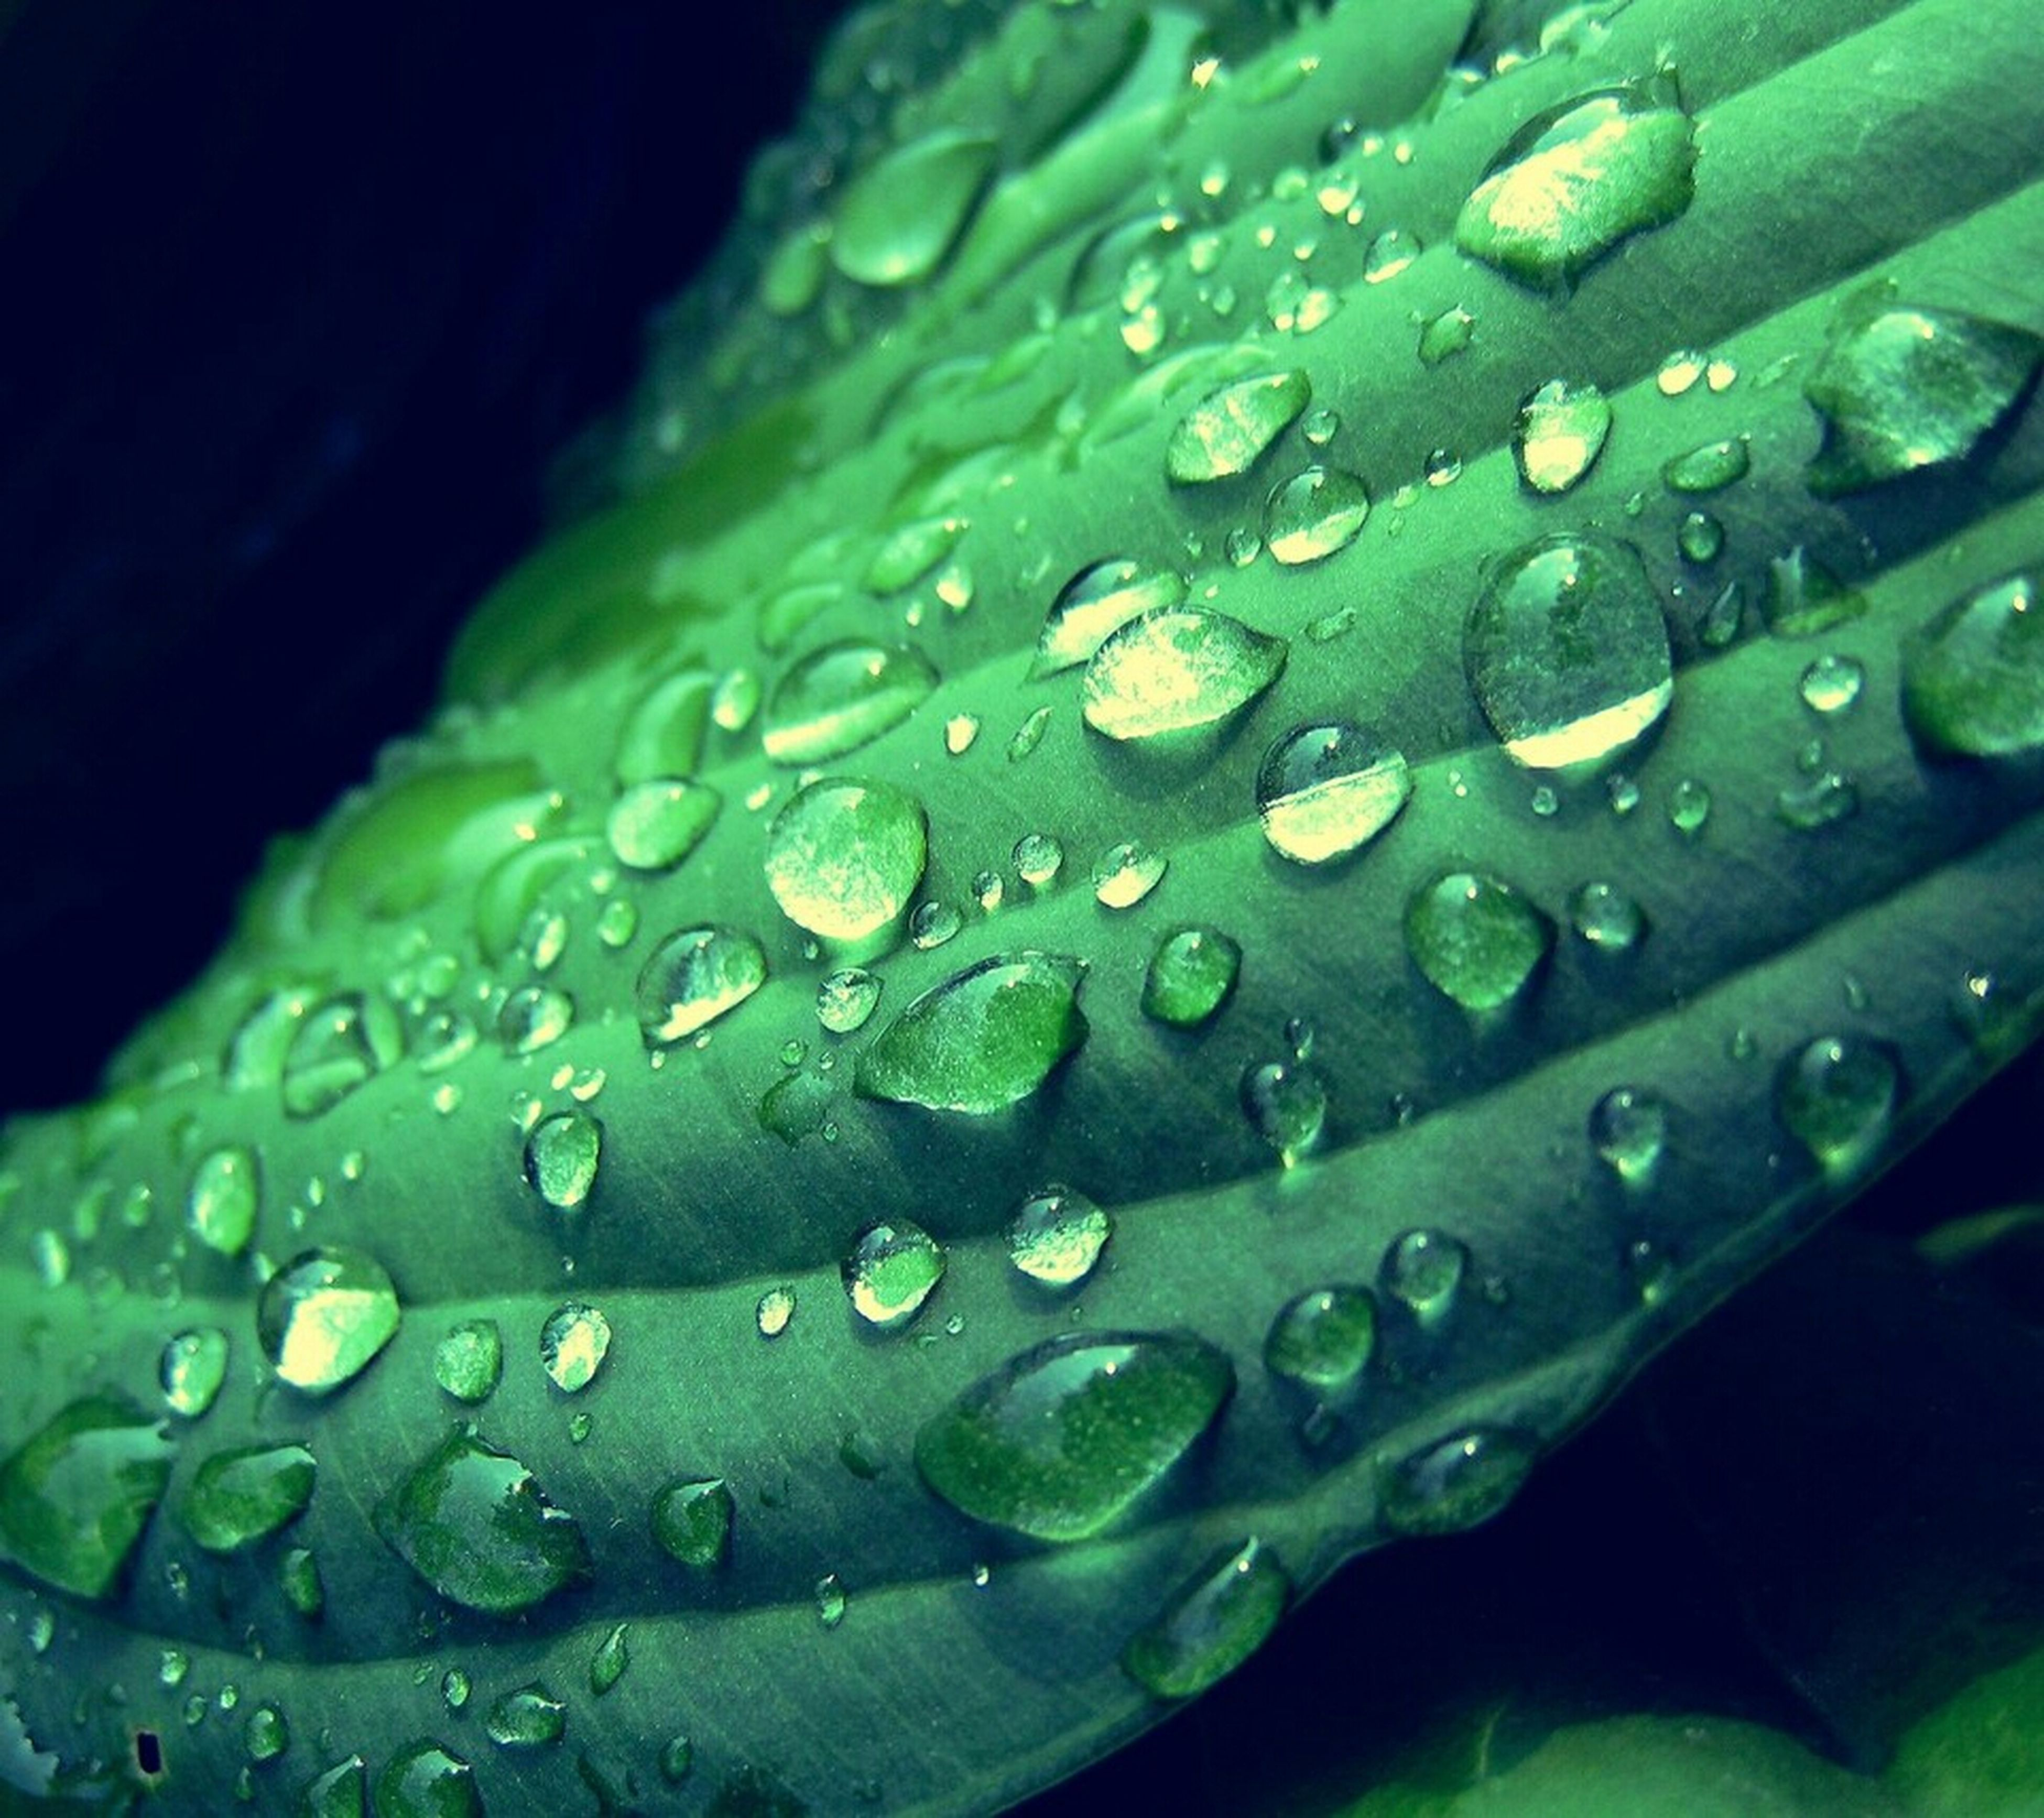 drop, water, freshness, leaf, wet, growth, fragility, close-up, beauty in nature, dew, green color, nature, plant, raindrop, flower, droplet, leaf vein, purity, rain, water drop